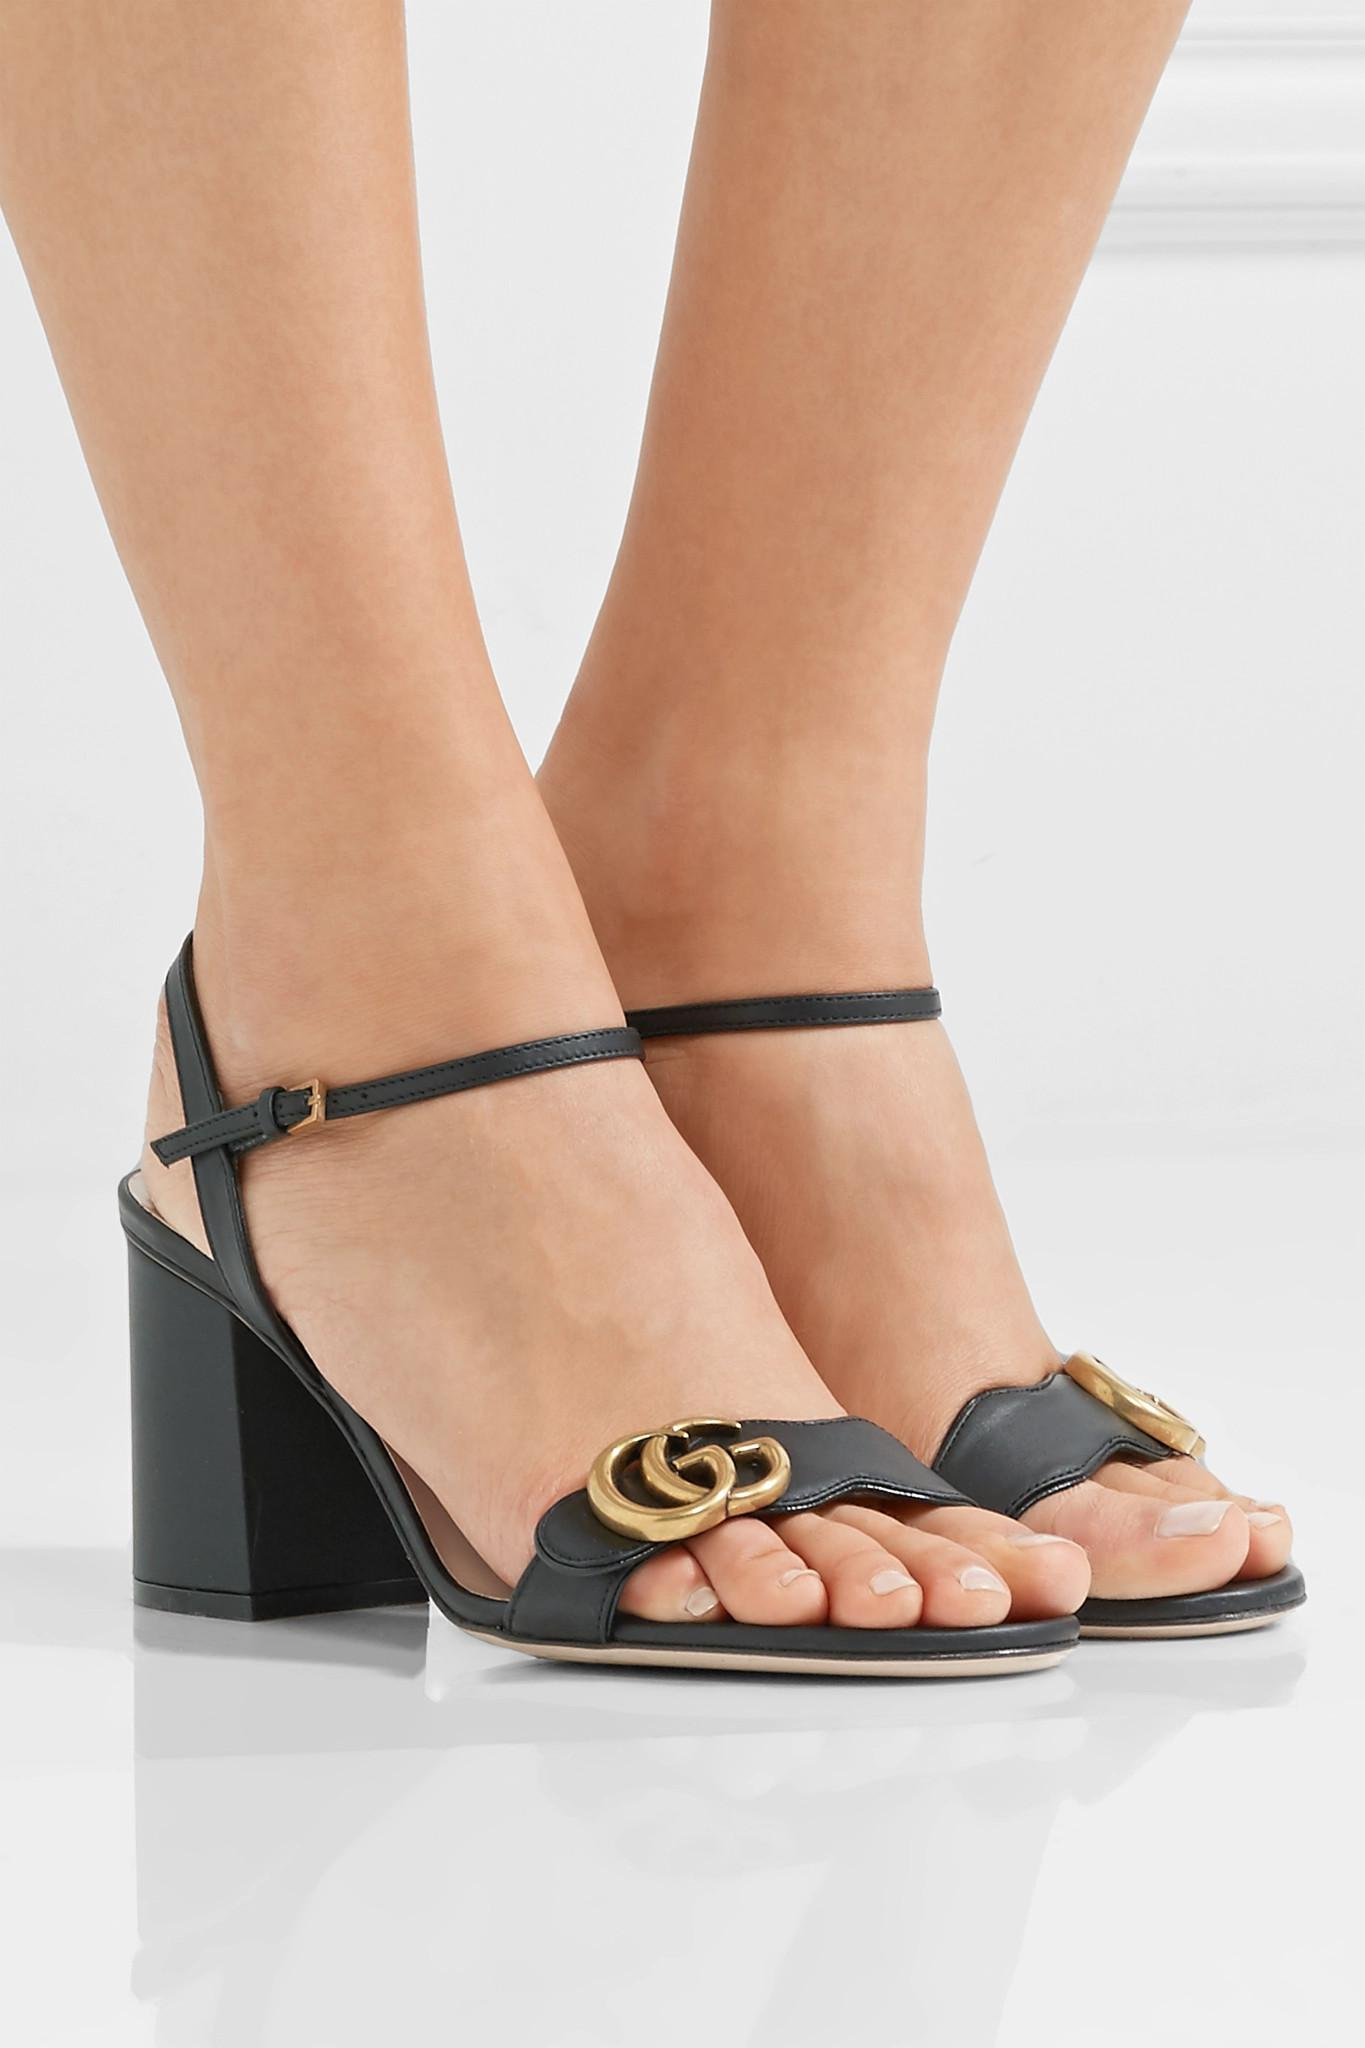 b4d20688b6a Gucci - Black Marmont Embellished Leather Sandals - Lyst. View fullscreen